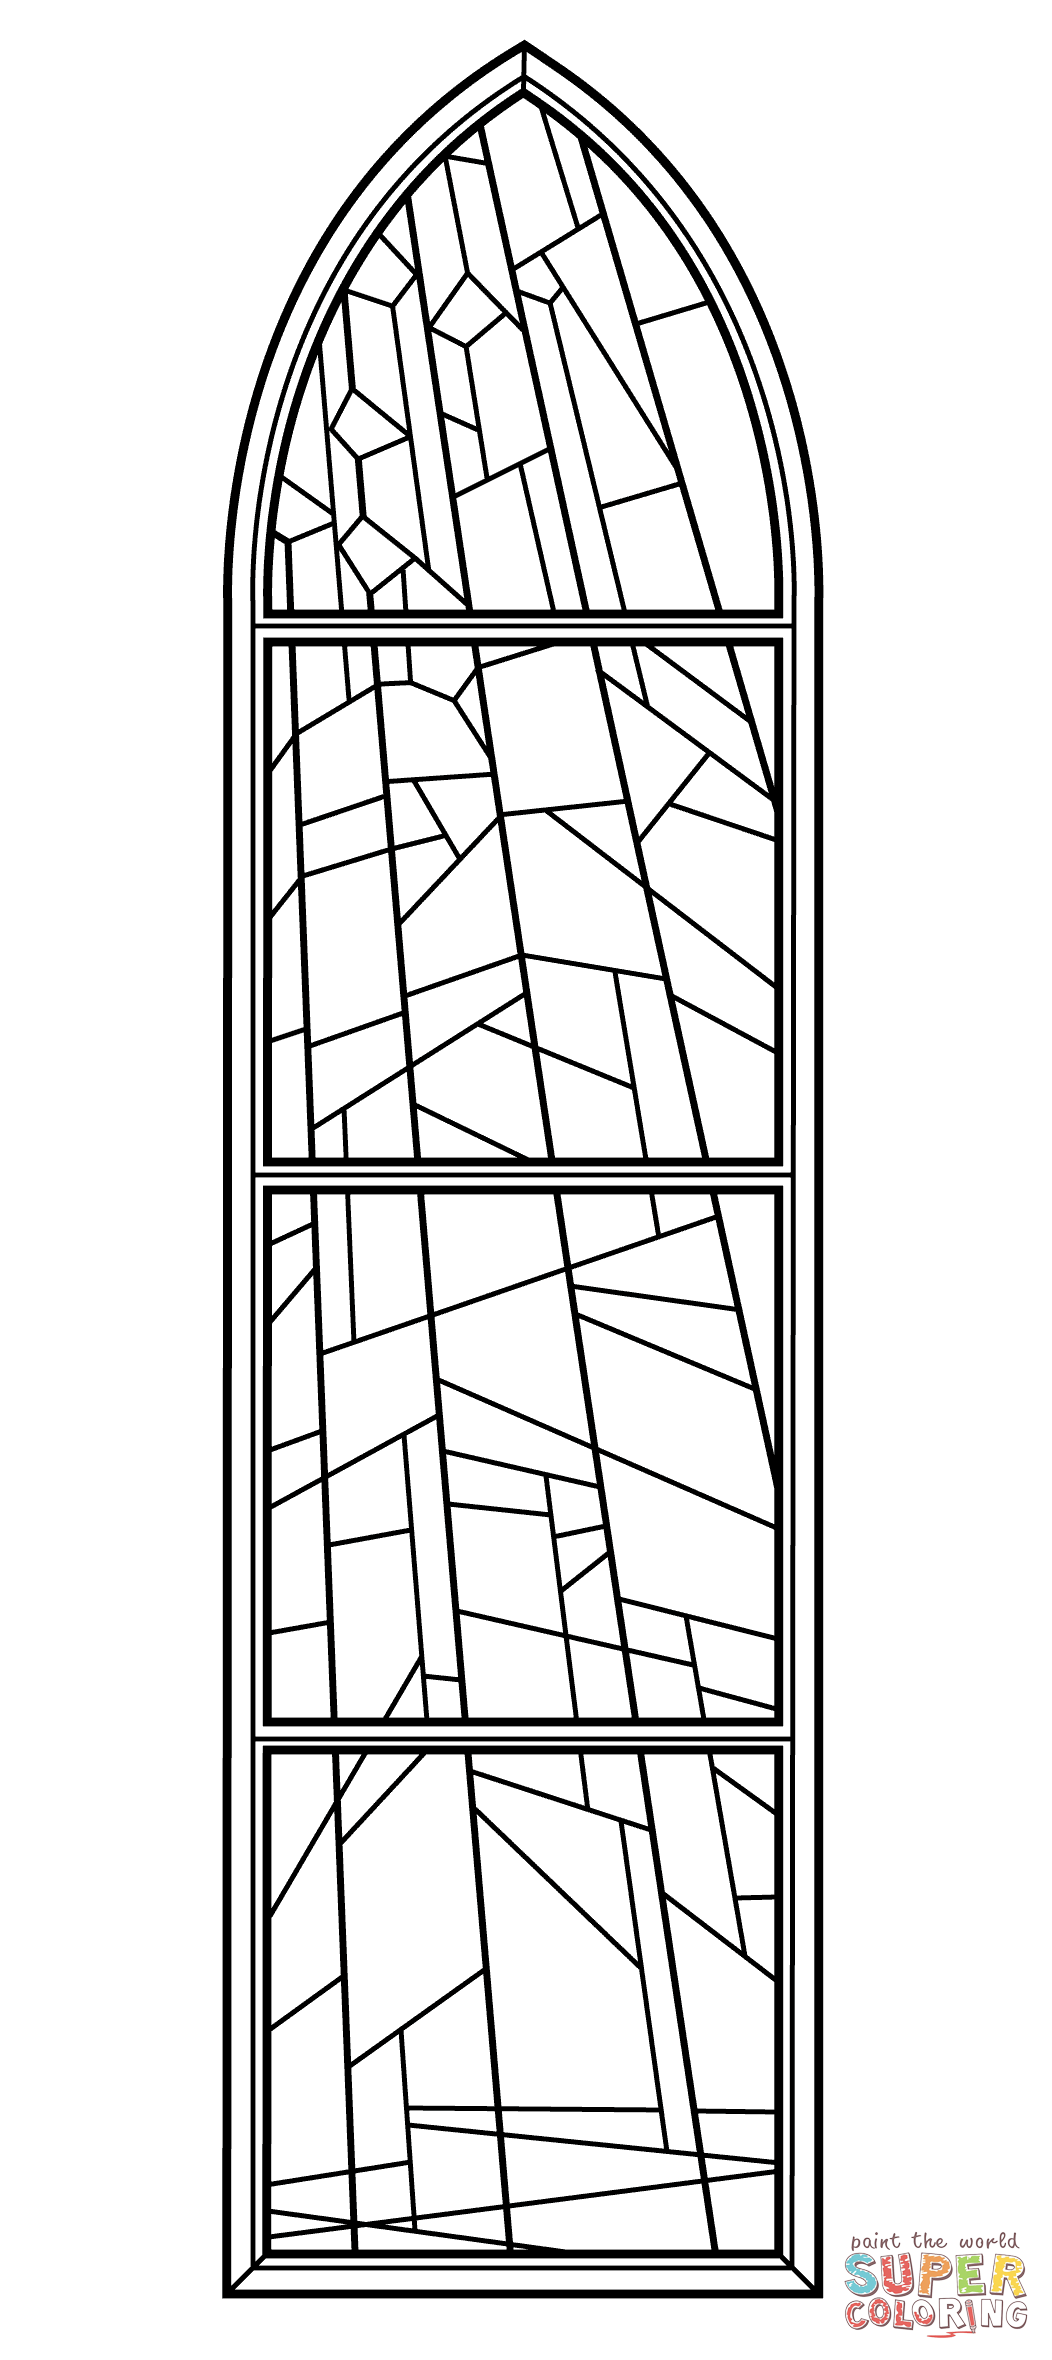 Stained Glass Window from Anglican Church coloring page